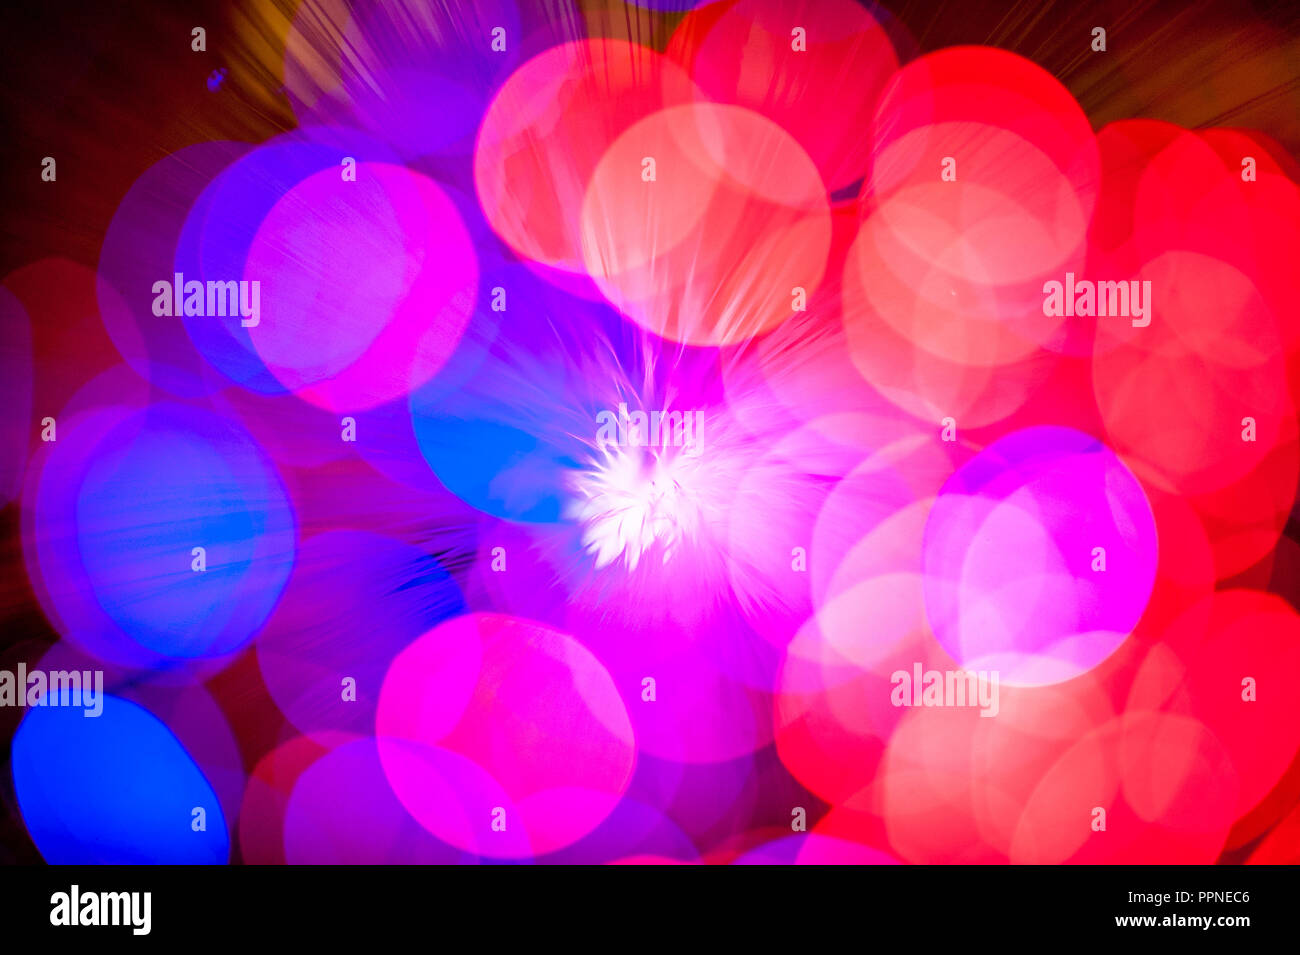 colourful lights resembling fireworks - Stock Image